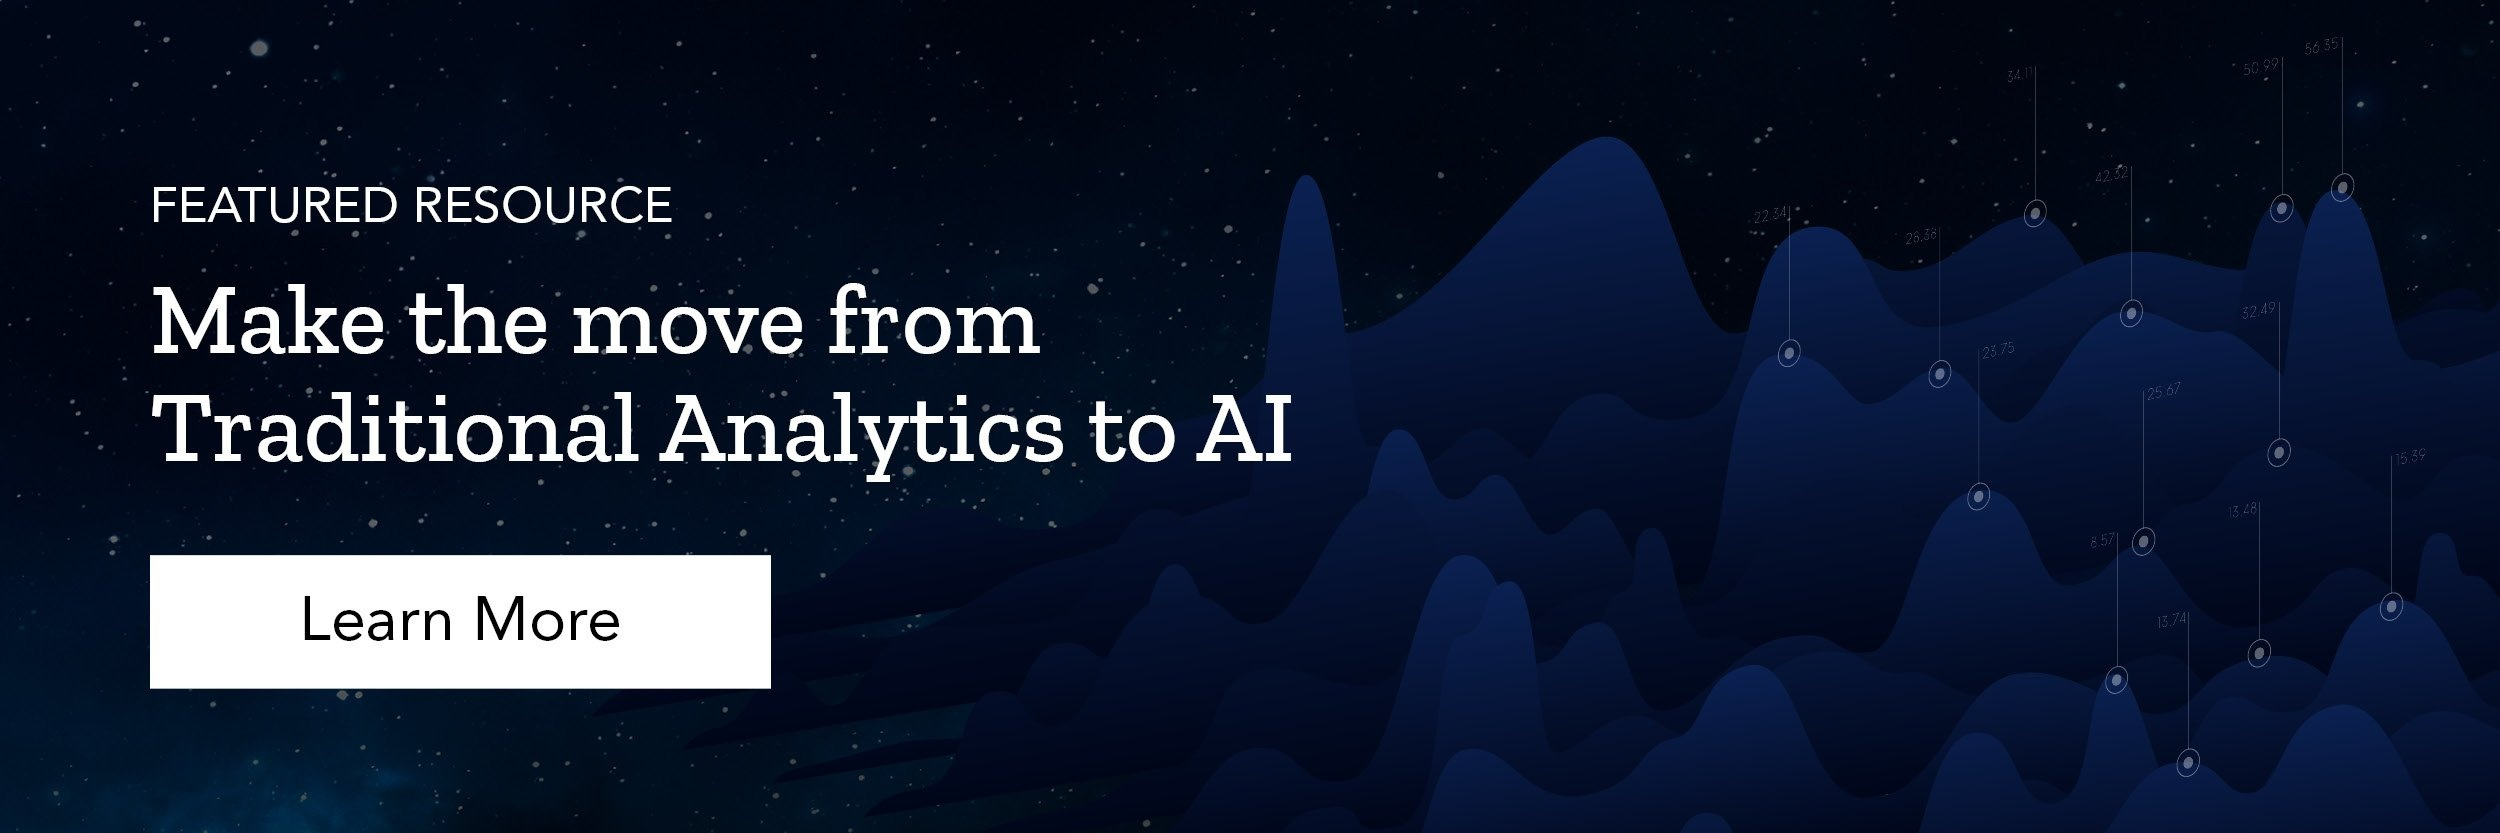 Make the move from Traditional Analytics to AI